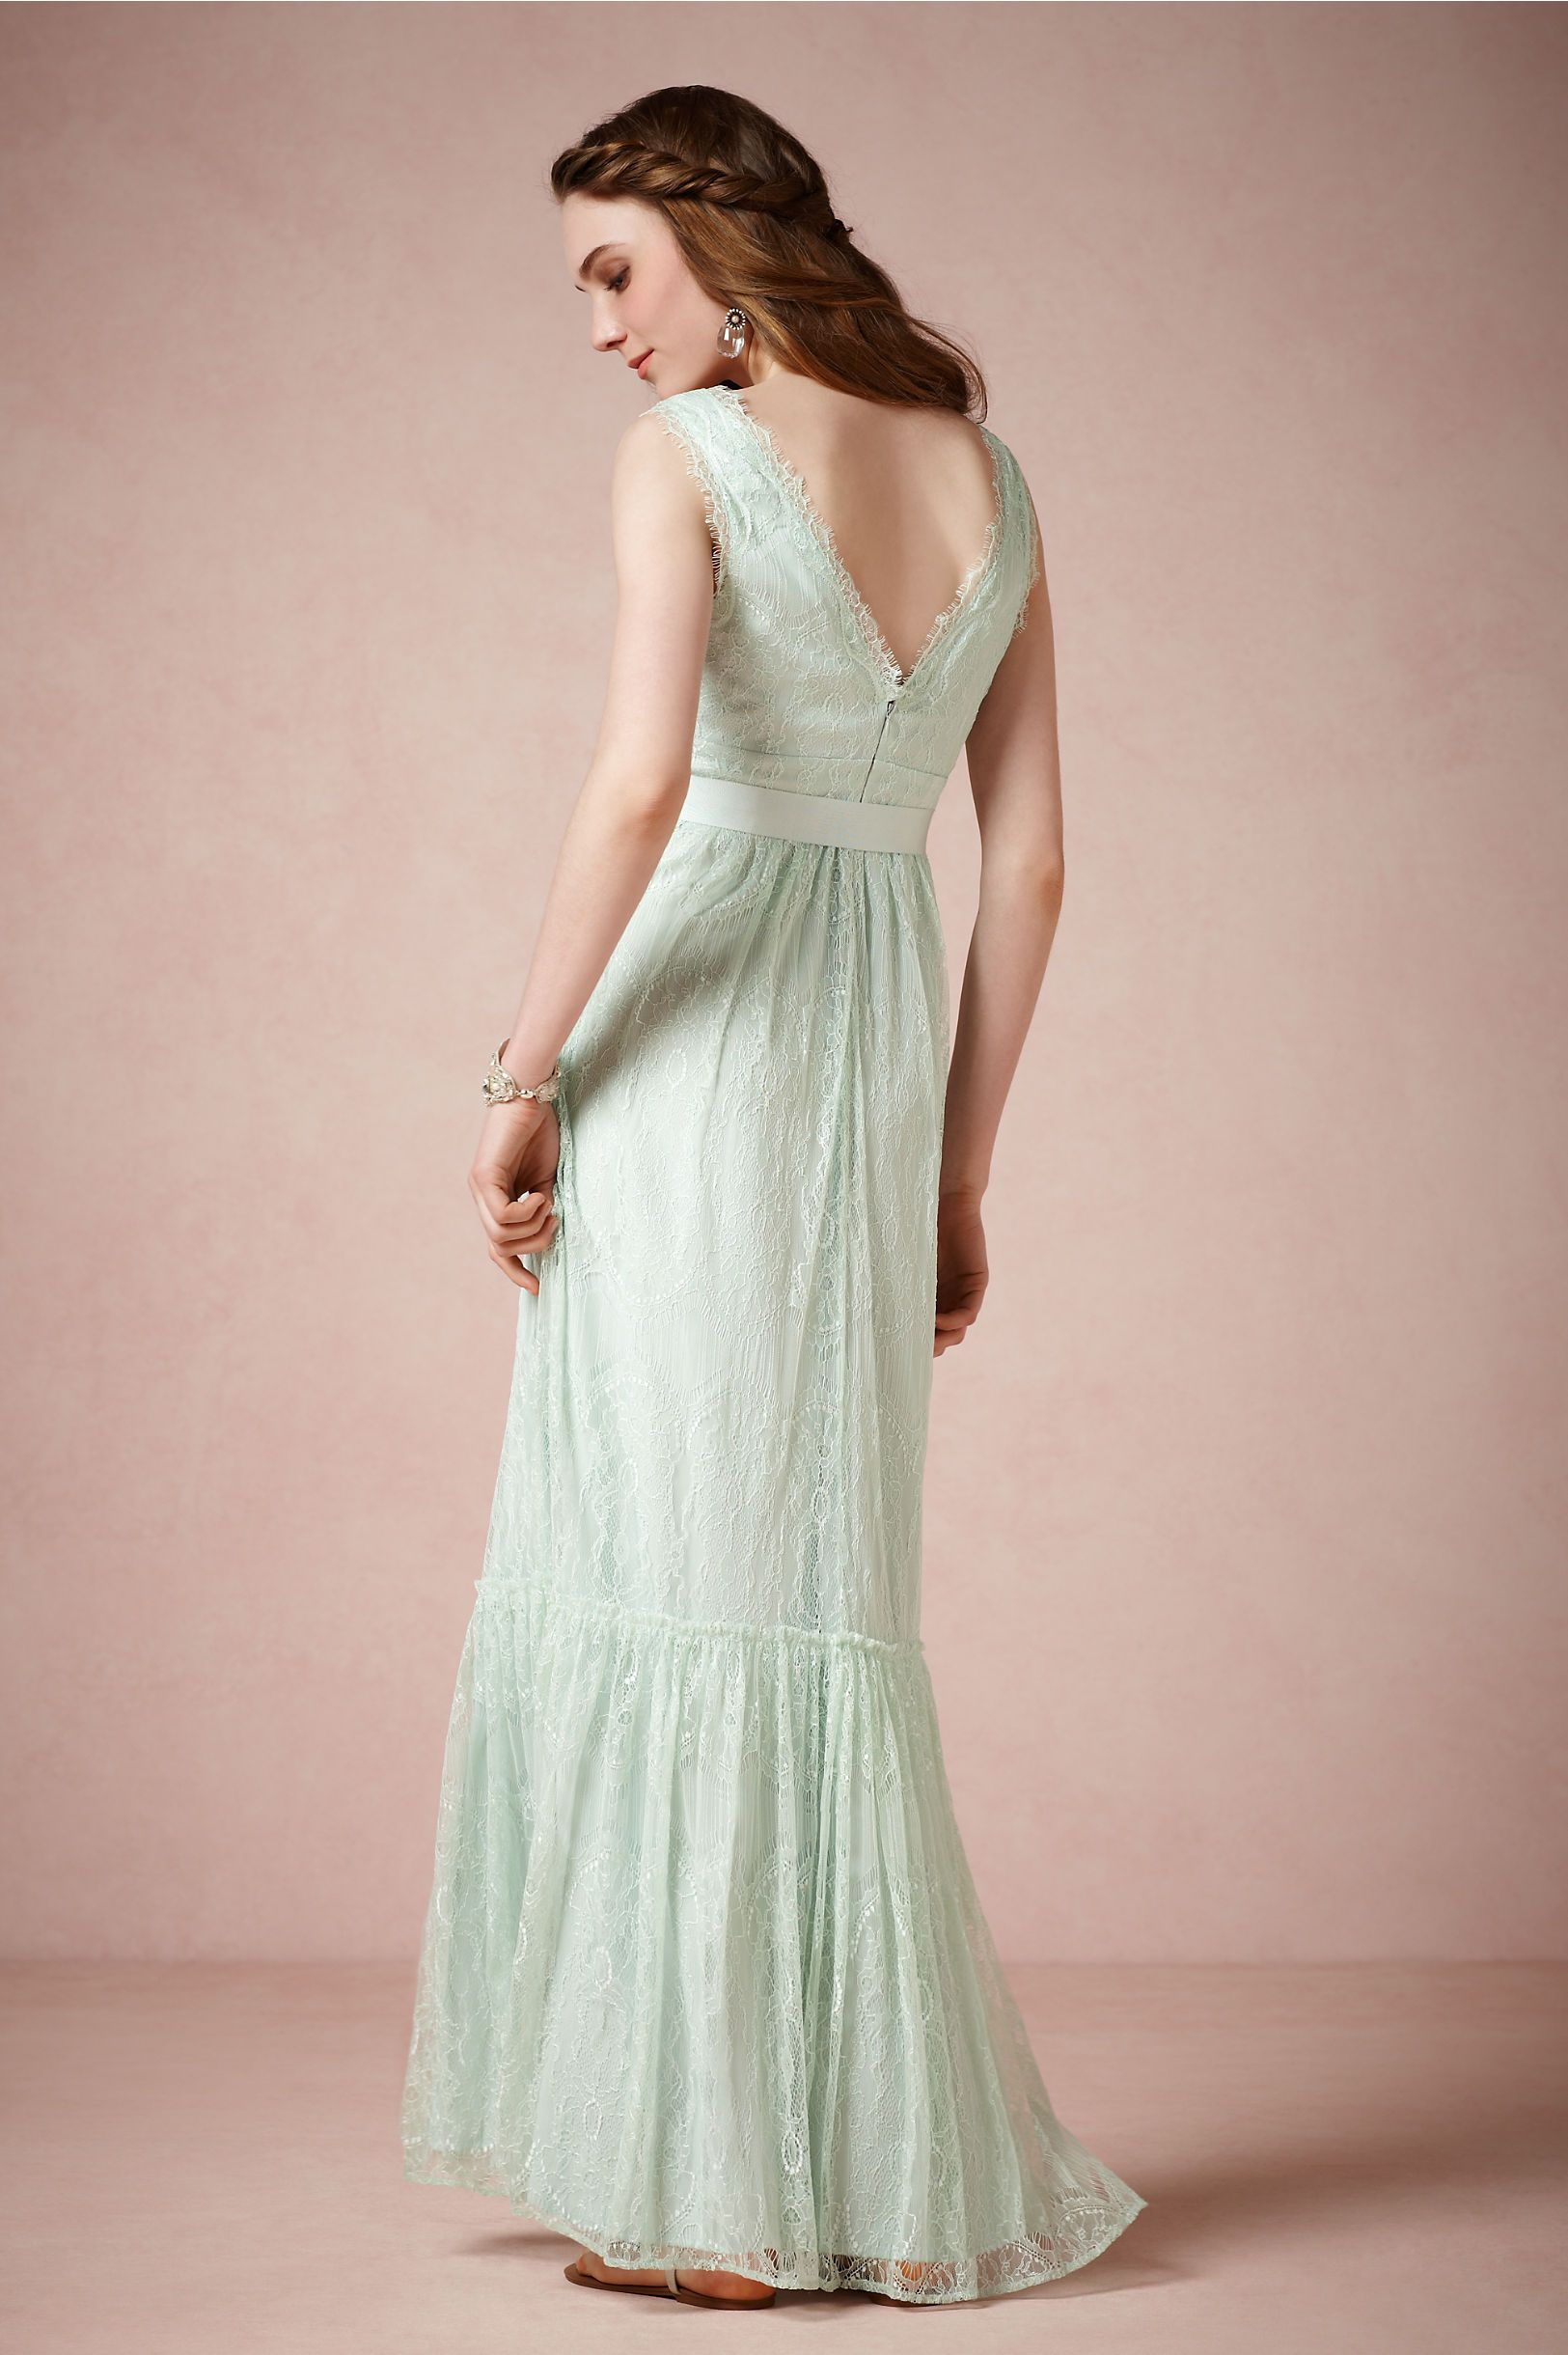 Idlewild Dress in Bridal Party & Guests Bridesmaids at BHLDN | danas ...